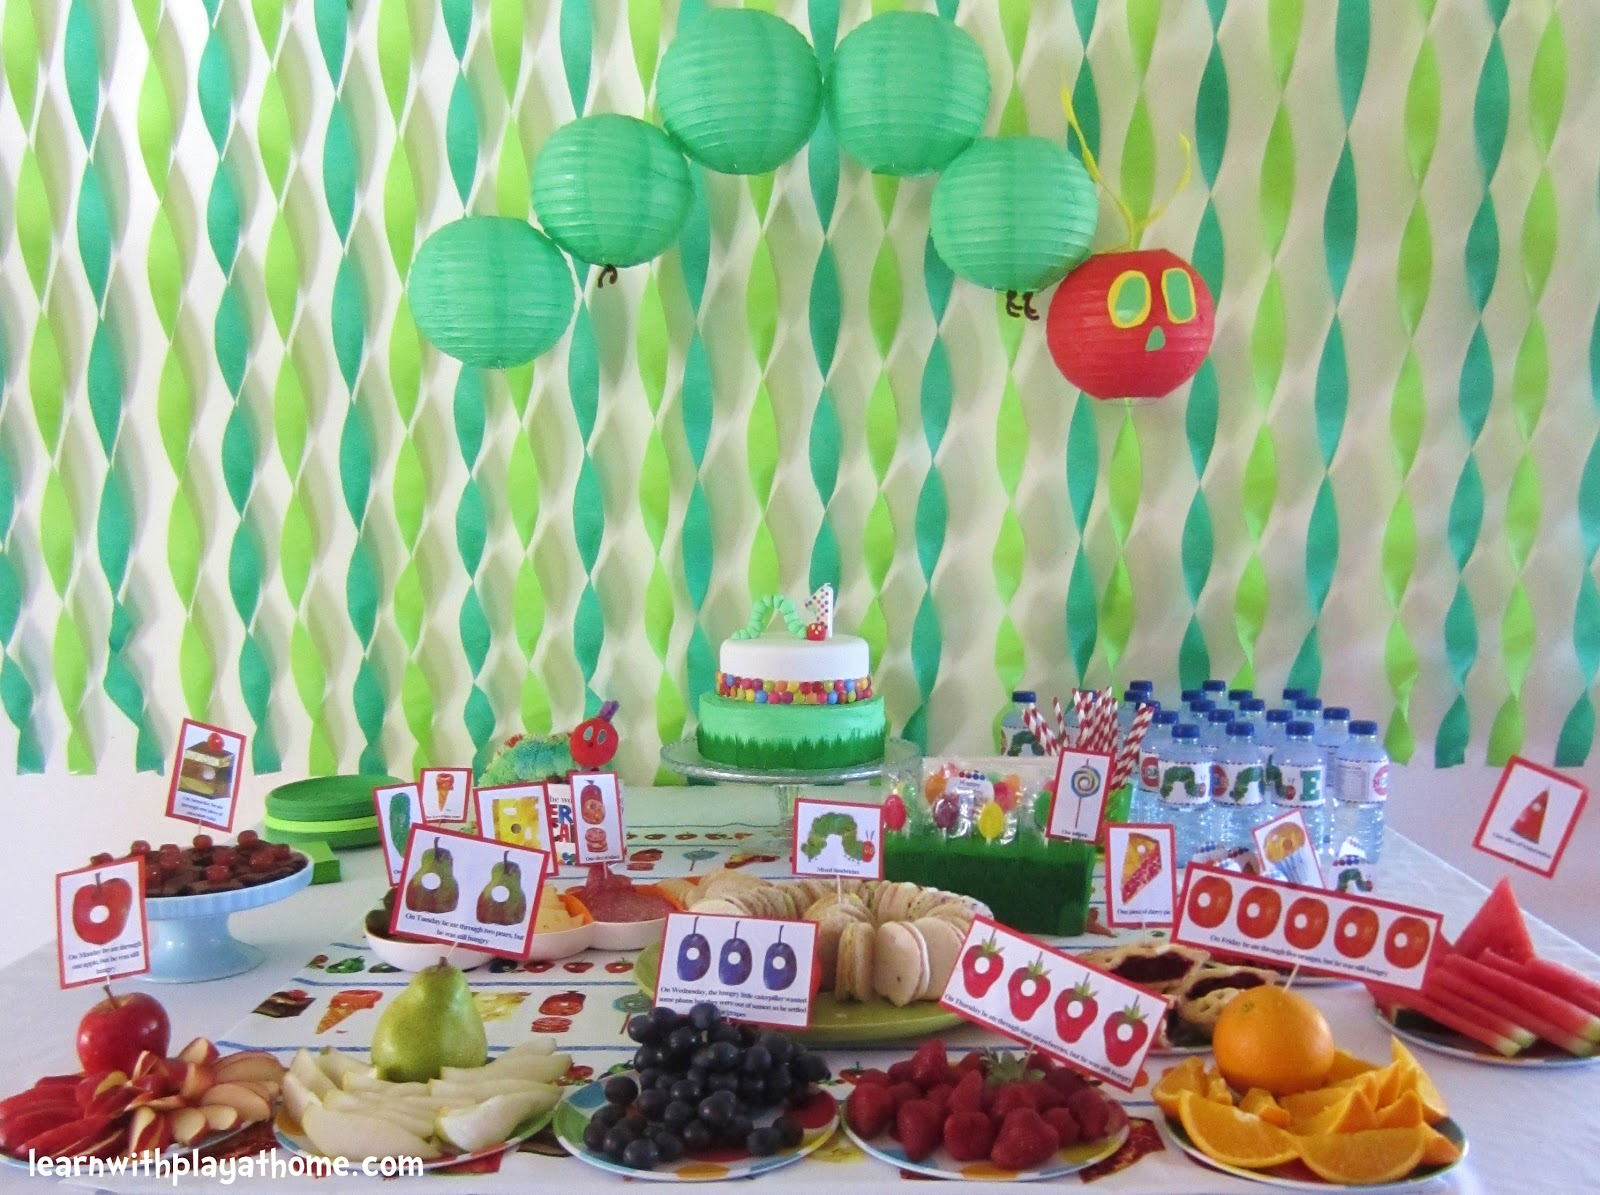 Birthday Birthday Party Ideas: Learn With Play At Home: Very Hungry Caterpillar Party